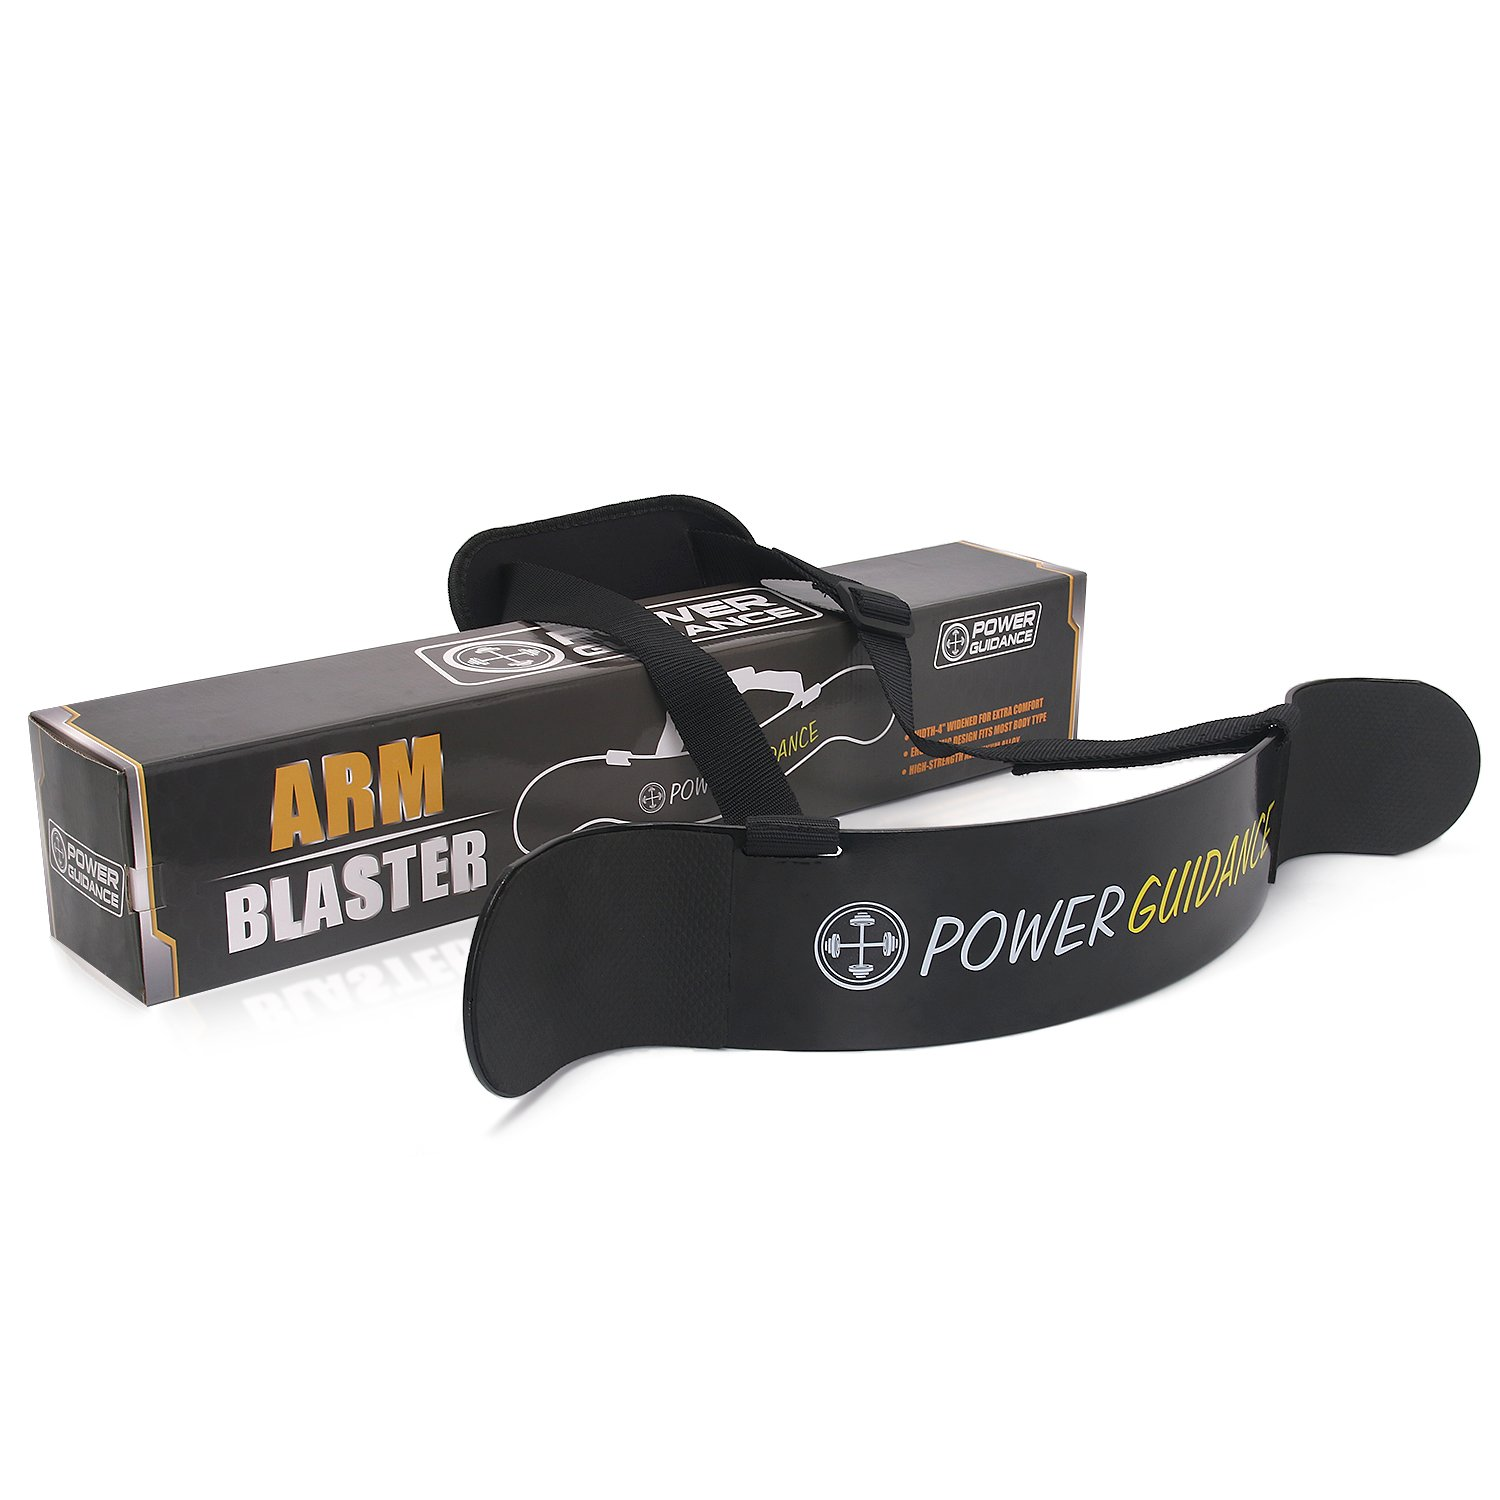 POWER GUIDANCE Arm Blaster, Bicep Isolator for Arm & Bicep Support, Great for Isolate Your Arms and Shoulders, Enhance Your Bicep Curls